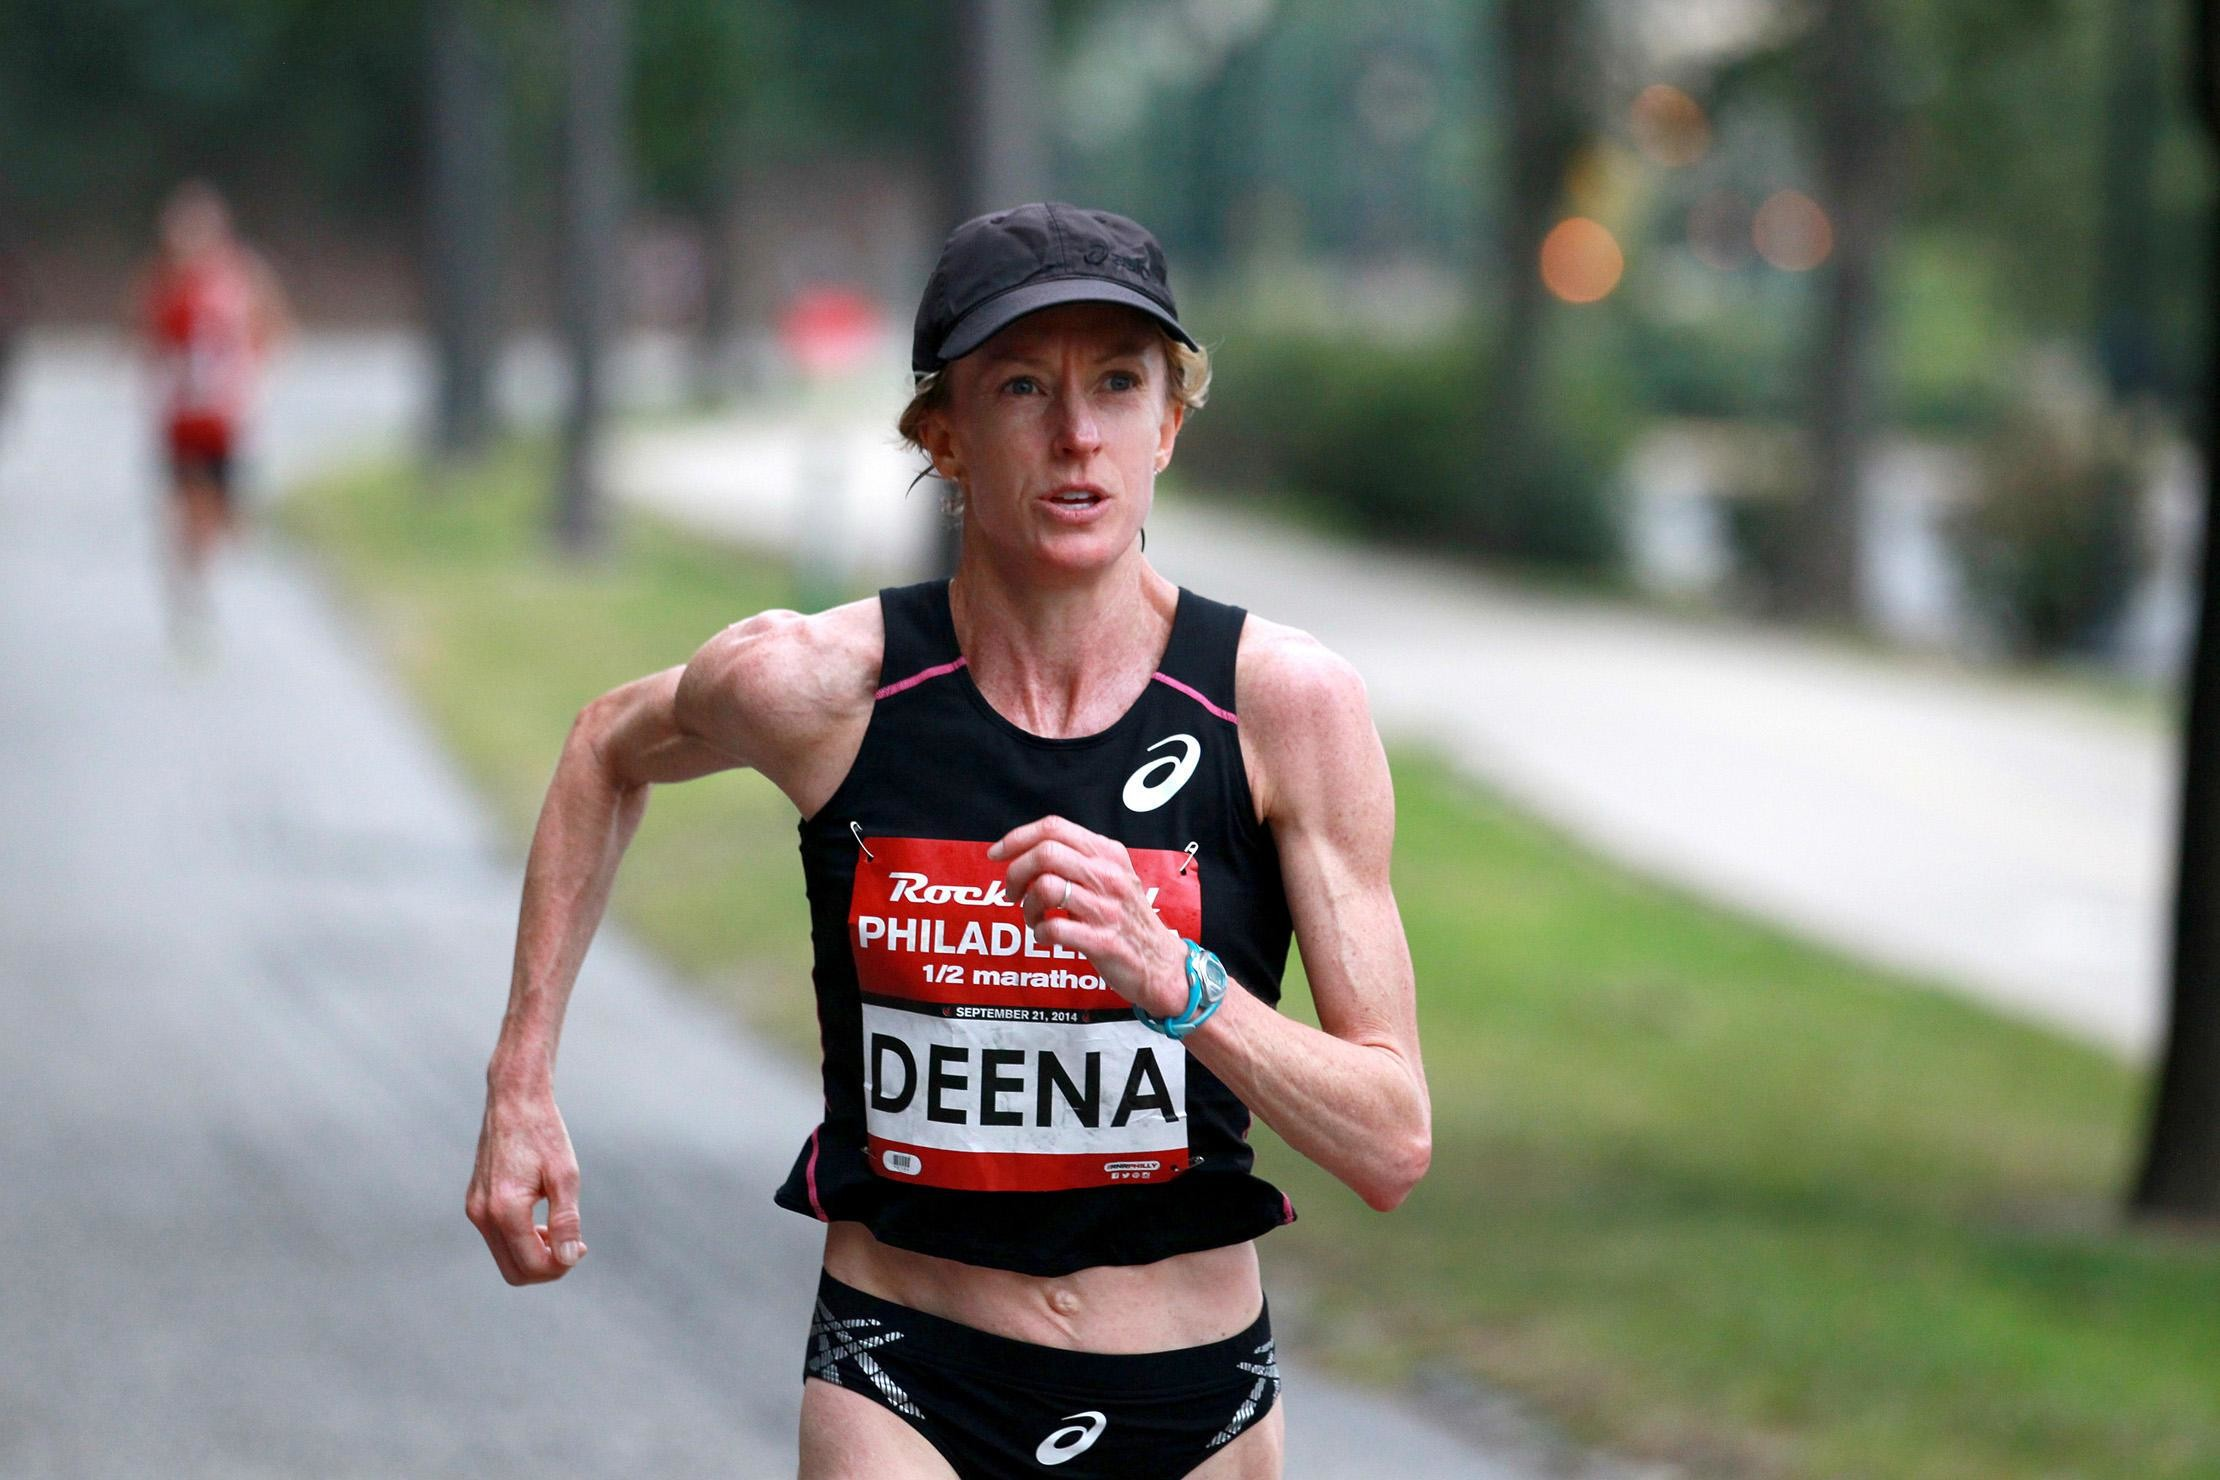 American marathon record holder Deena Kastor has been writing and decided in December to run Boston